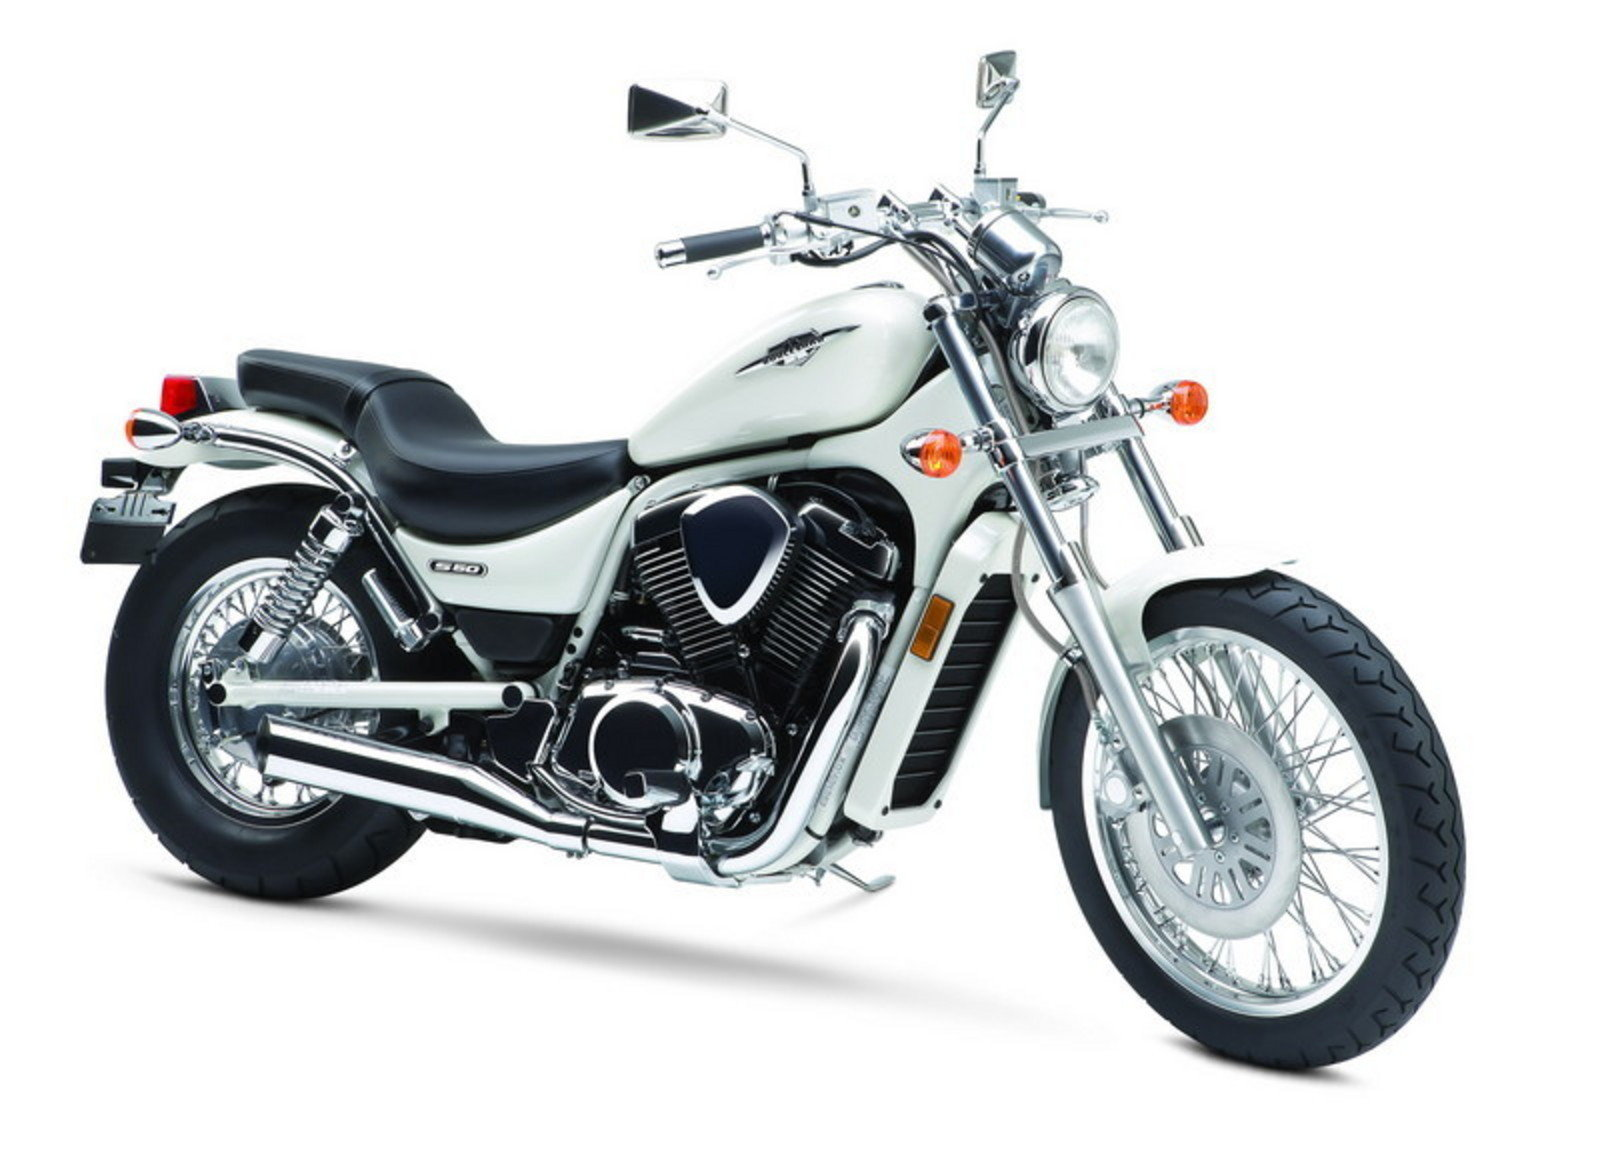 2007 suzuki boulevard s50 review top speed. Black Bedroom Furniture Sets. Home Design Ideas